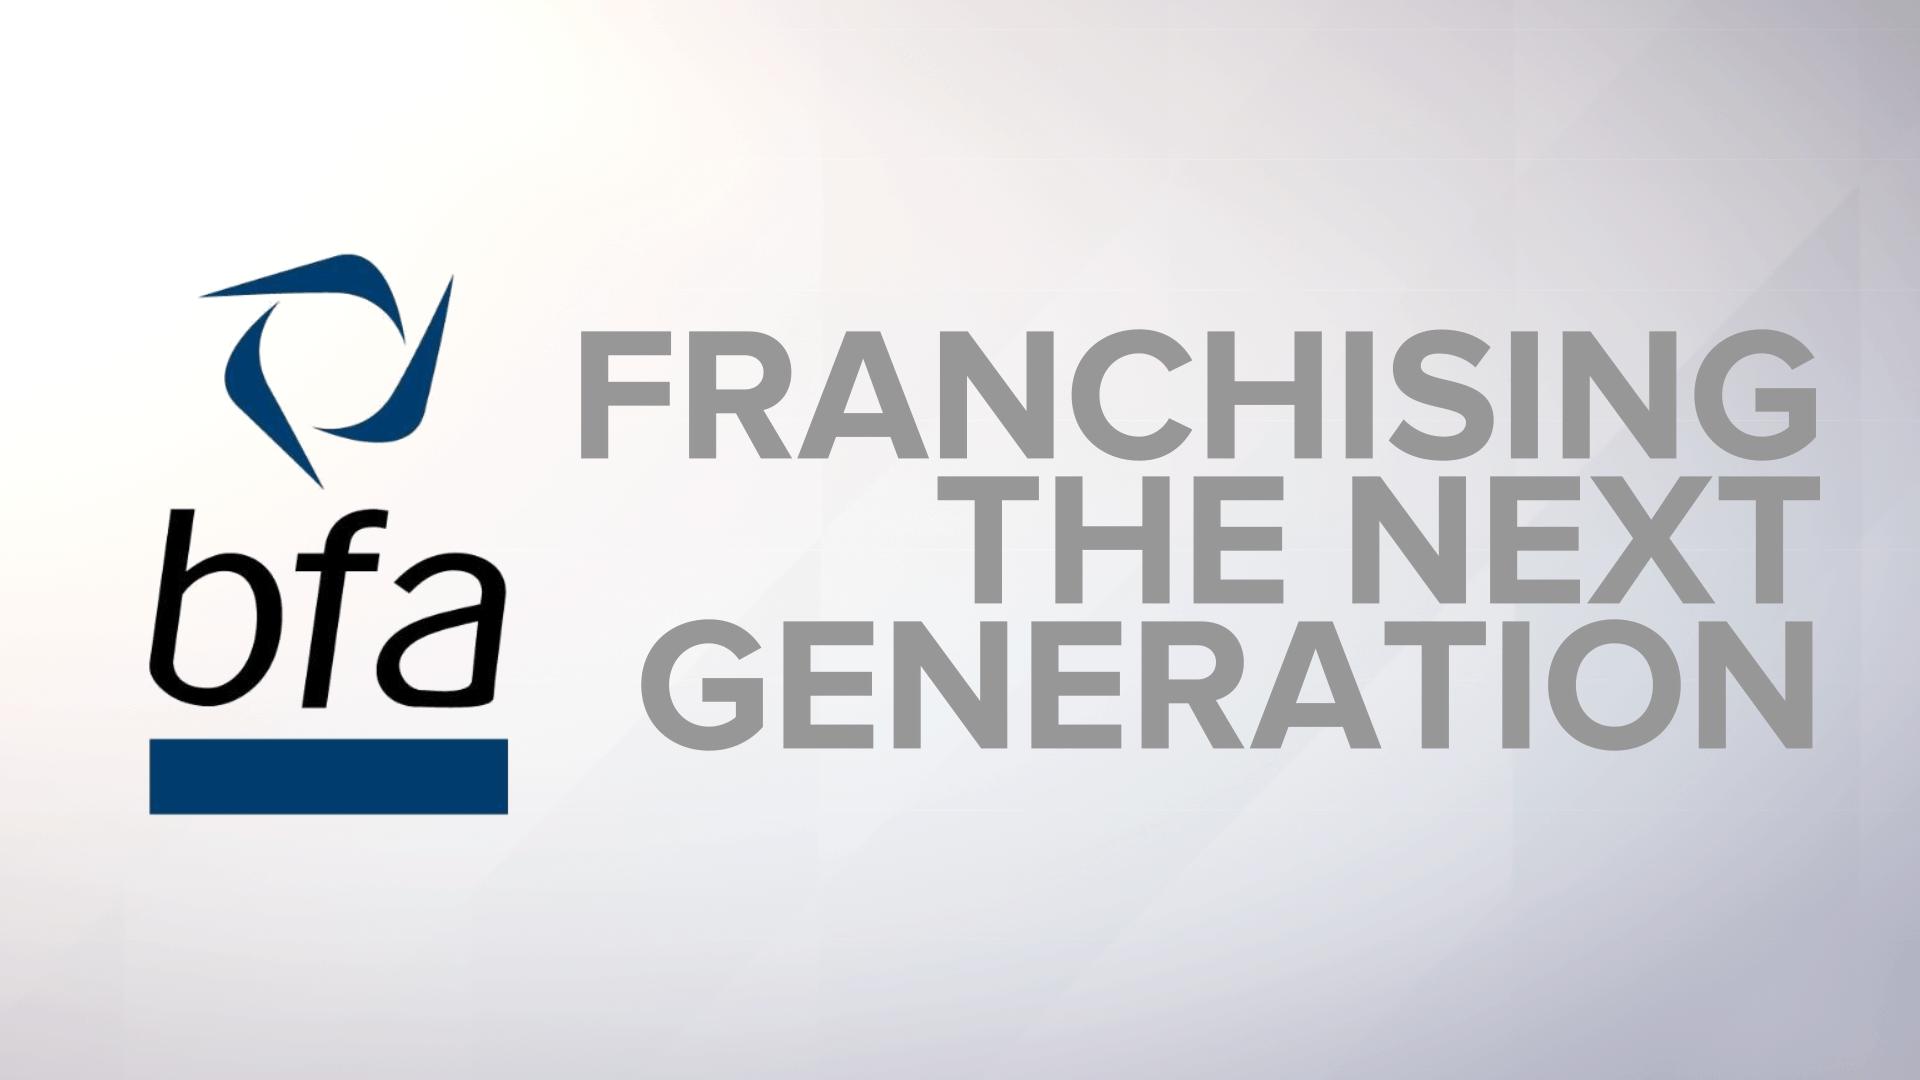 Franchising the Next Generation: An ITN Productions Collaboration